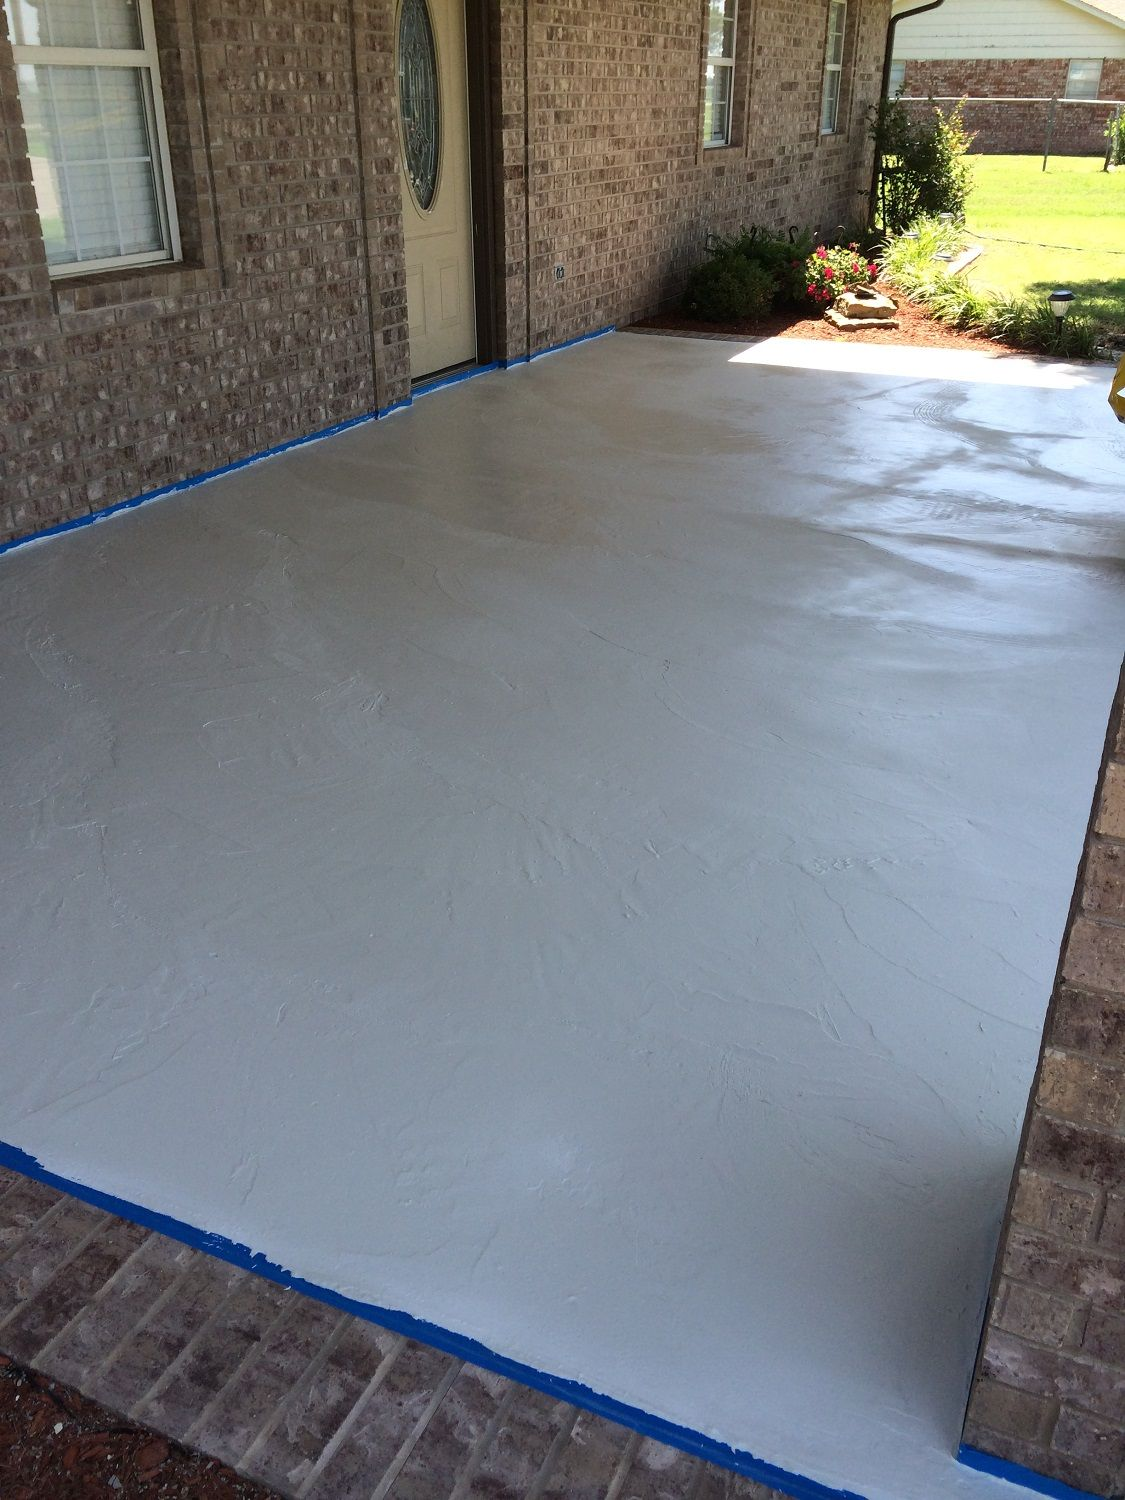 Don T Live With An Ugly Old Concrete Slab Start Fresh Dci Overlay Stain And Seal Your Way To A Brand New Patio Or Floor